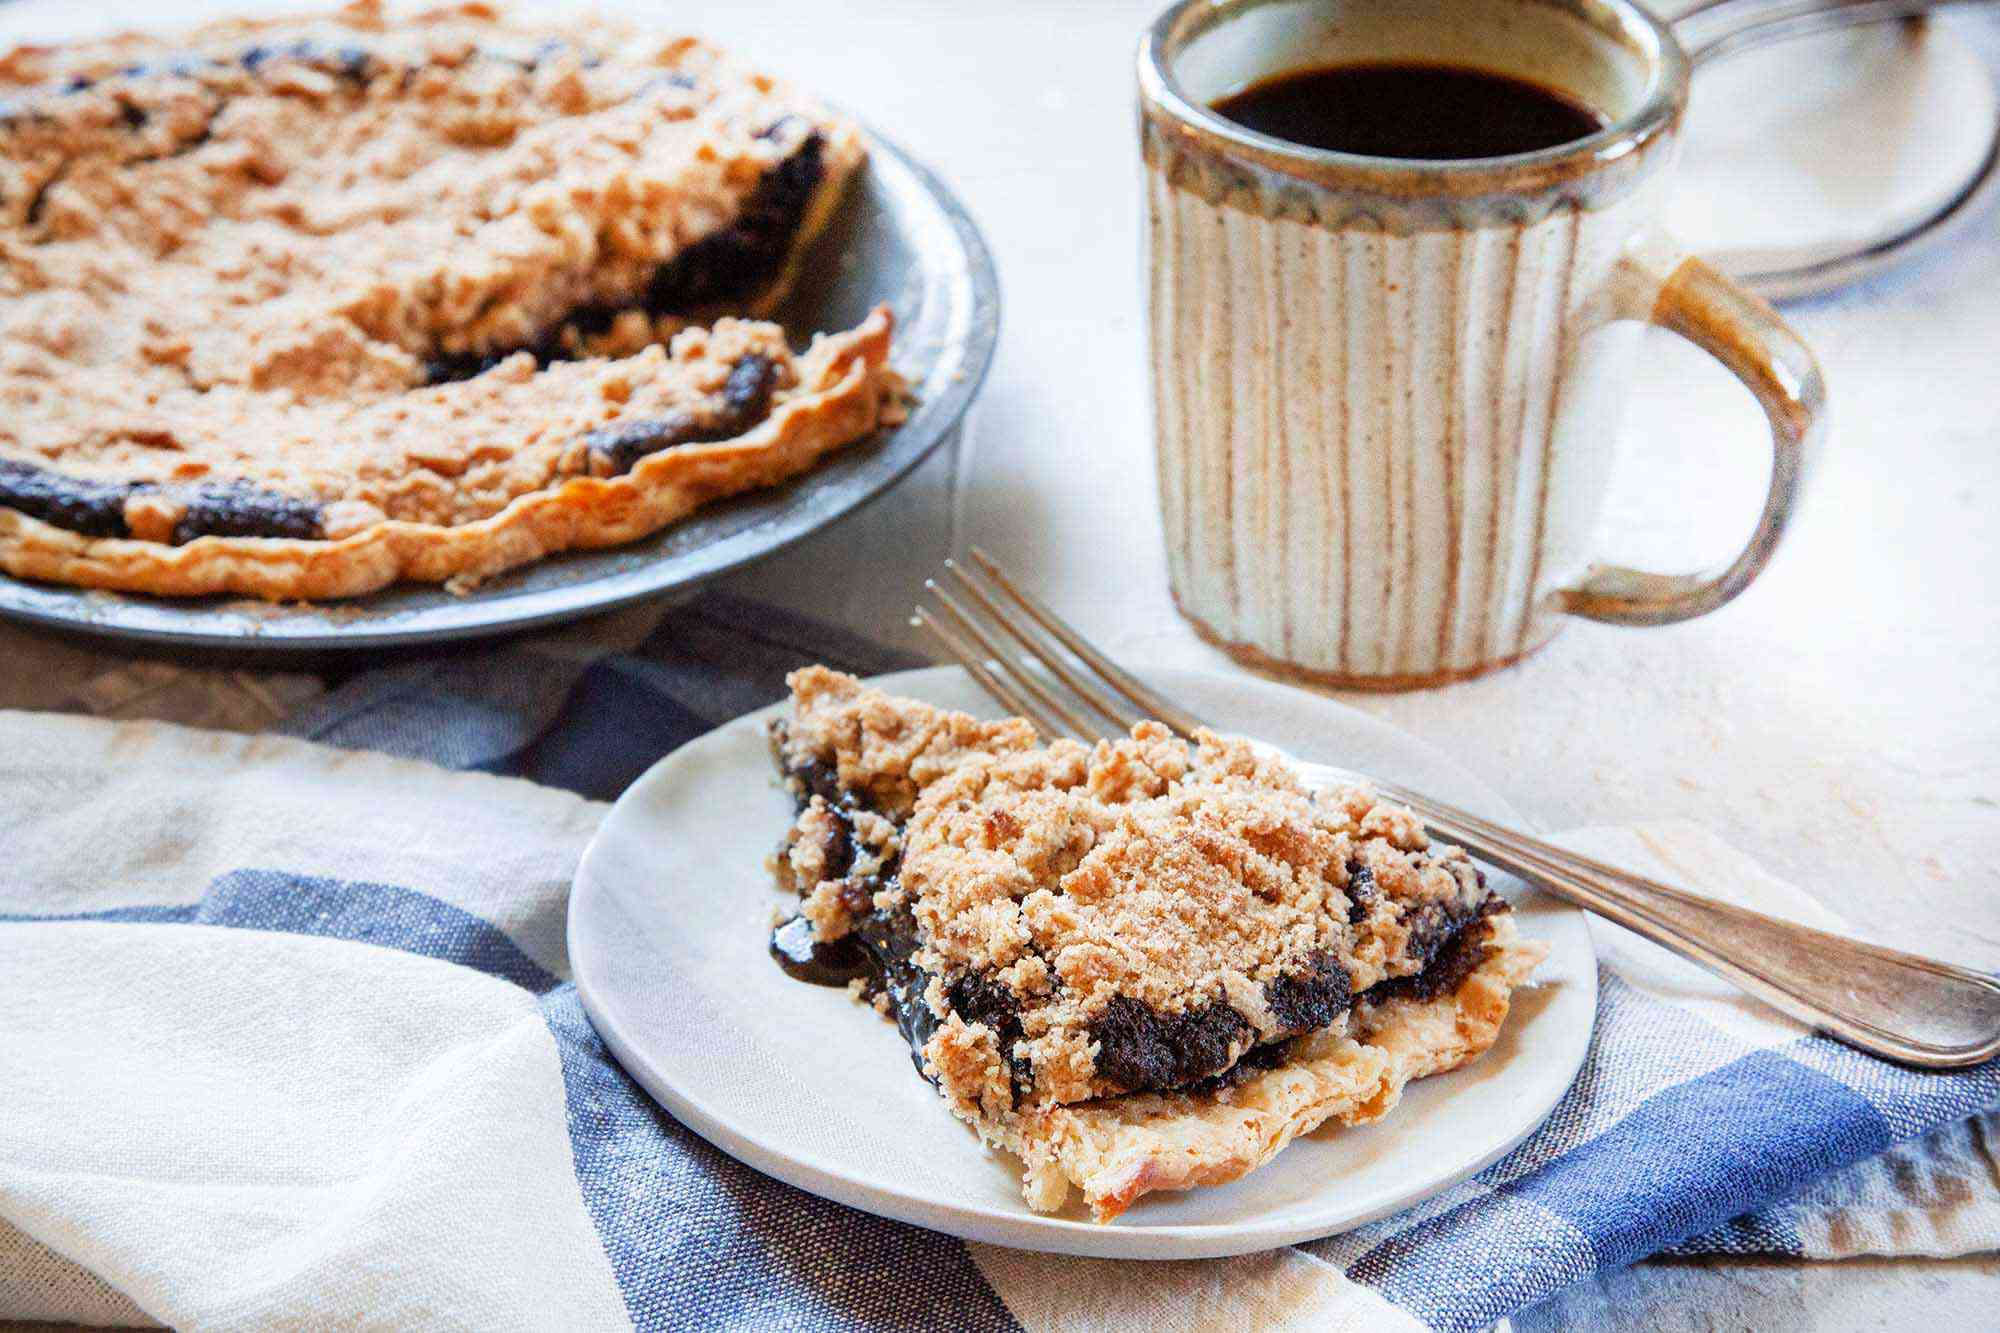 A slice of shoo fly pie on a plate with the rest of the pie behind it along with a cup of coffee.